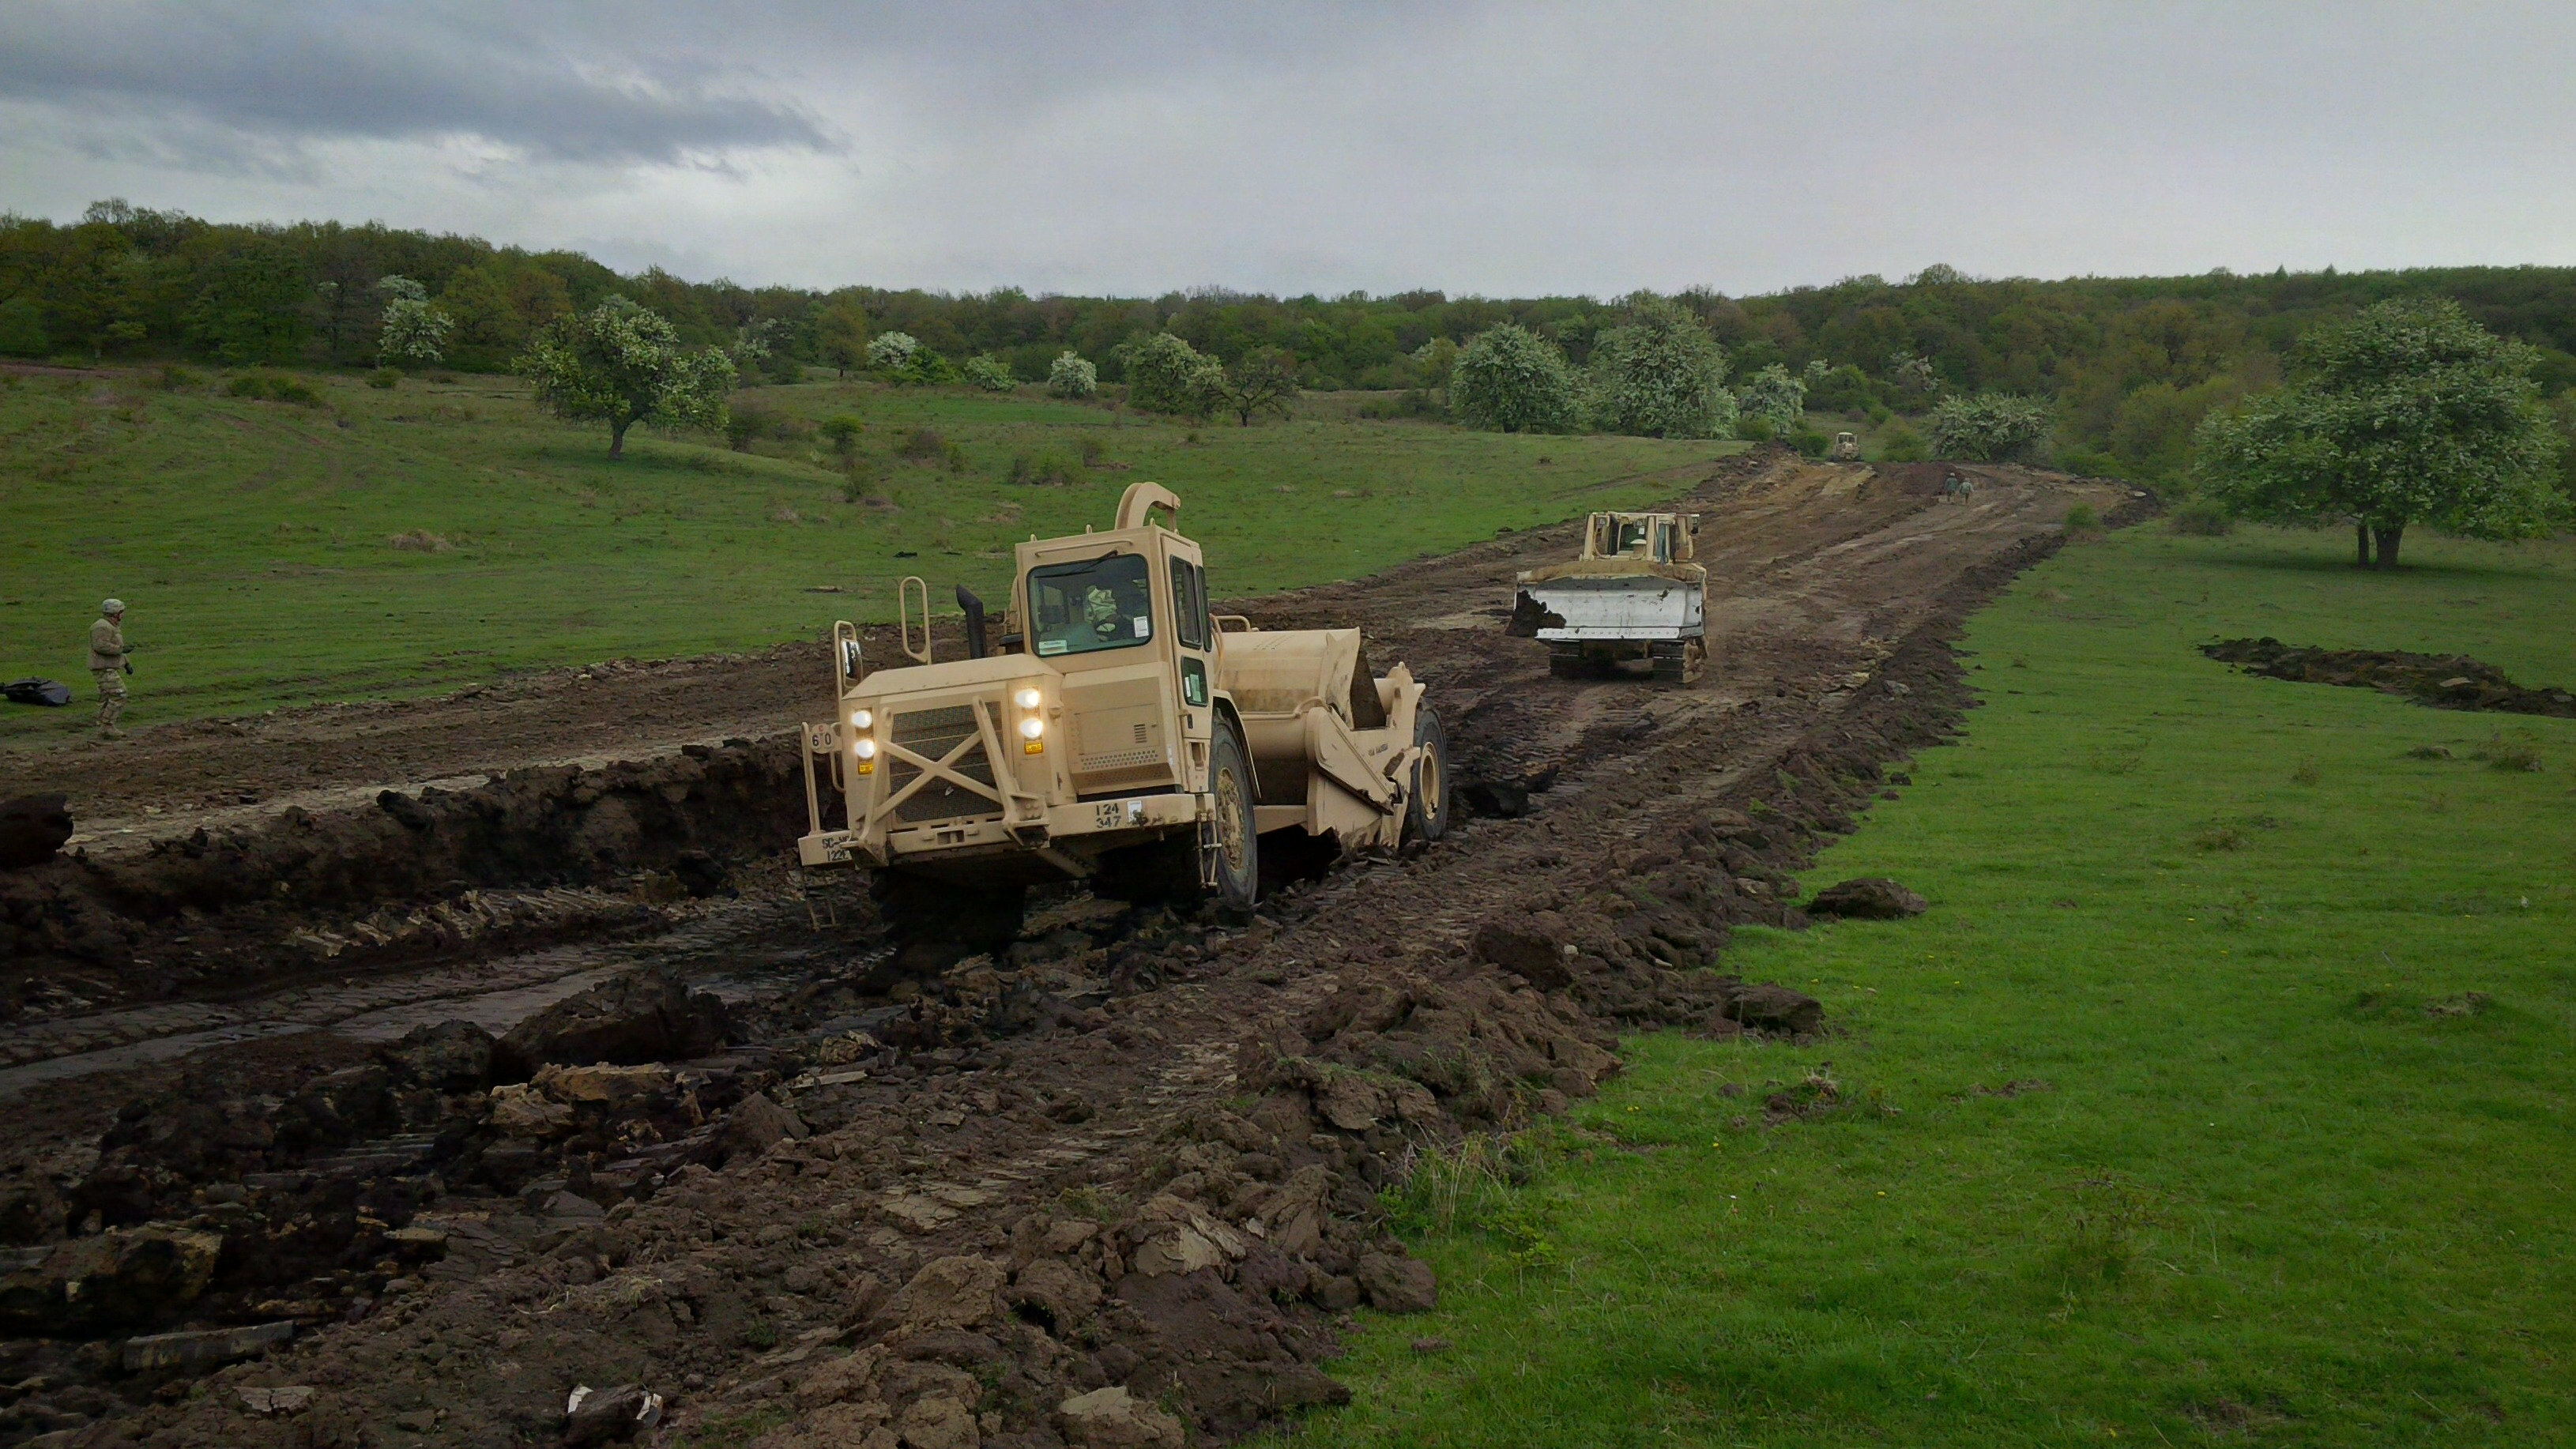 A scraper removes dirt from lane two near battle position two of the nonstandard live fire range. The area needed to be firmed up, so the soft material was excavated and backfilled with better material to solidify the surface. (Jen Judson/Staff)